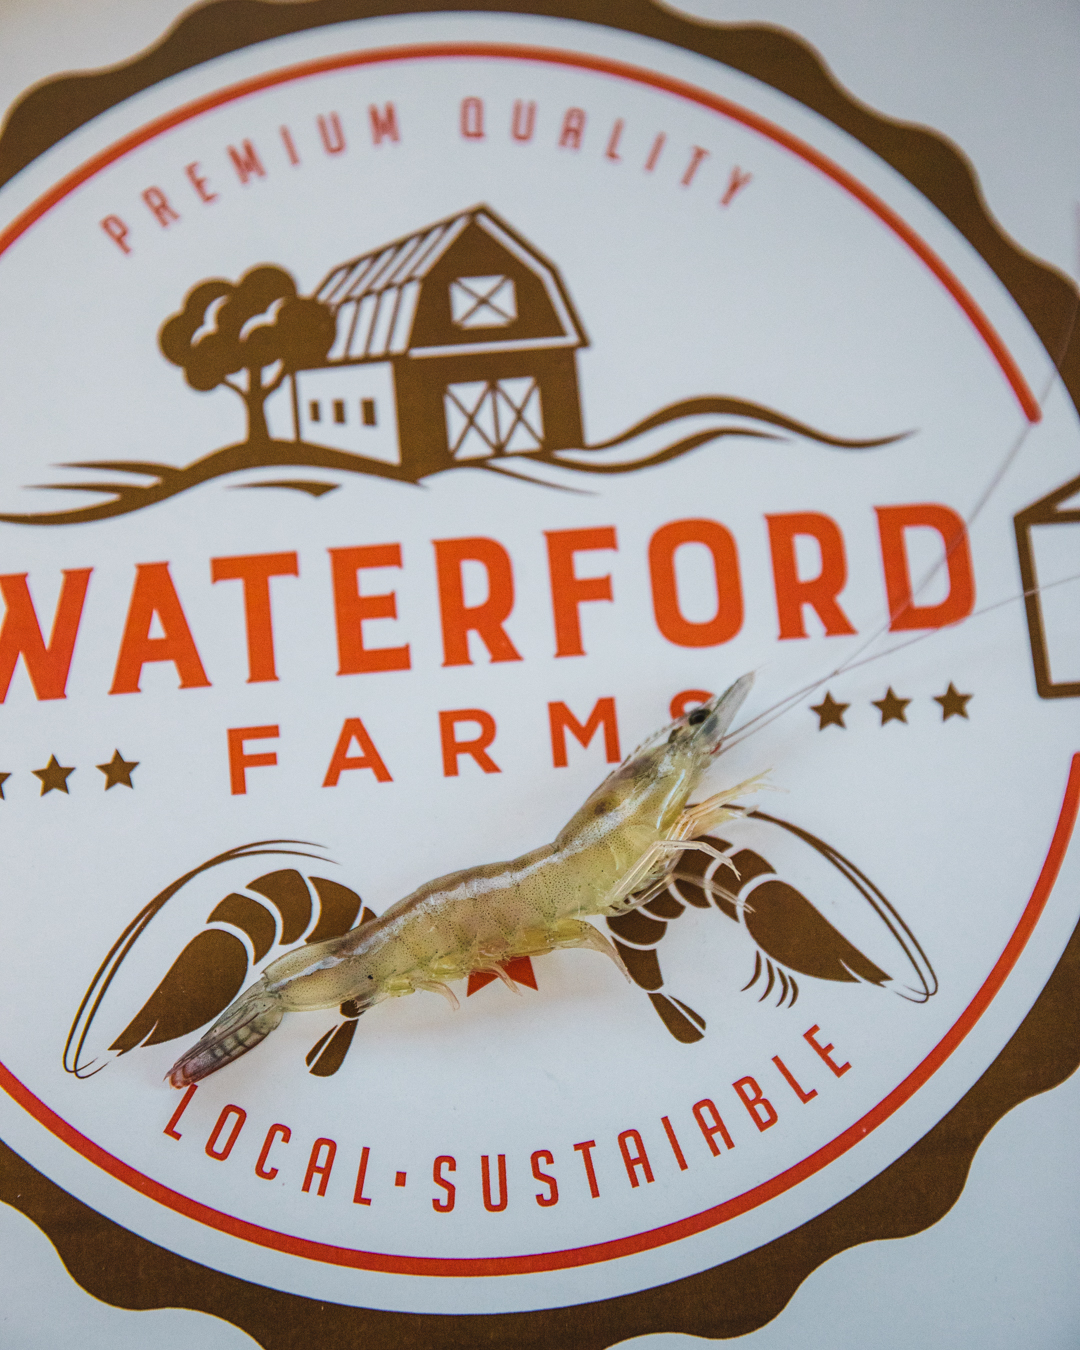 Thousands of miles from the nearest ocean, a sustainable seafood